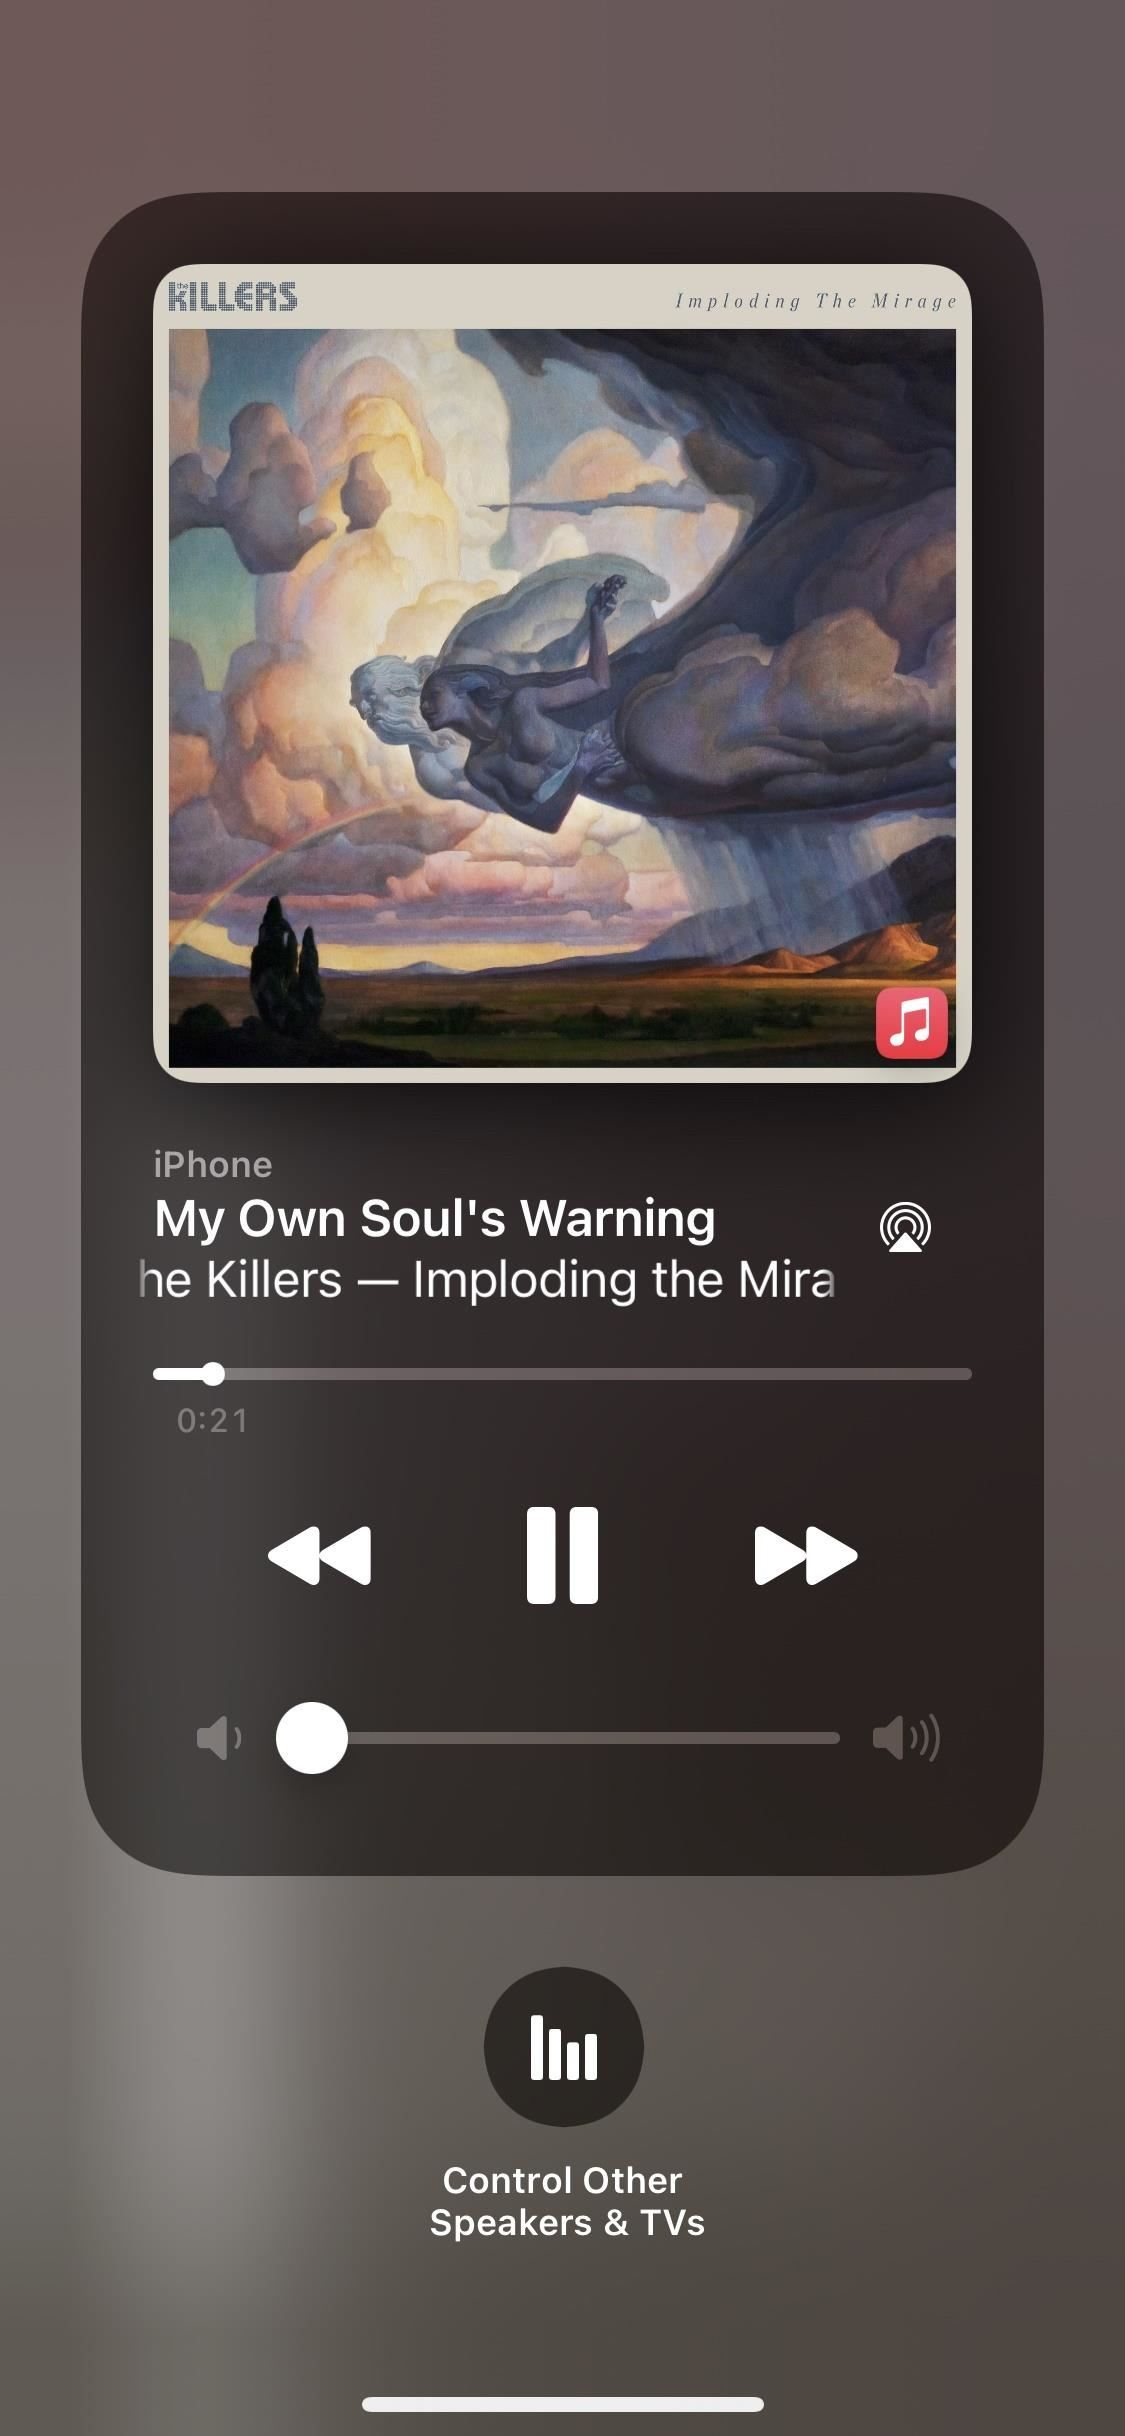 Apple's iOS 14.2 Public Beta 1 for iPhone Adds New Control Center Tile for Shazam Music